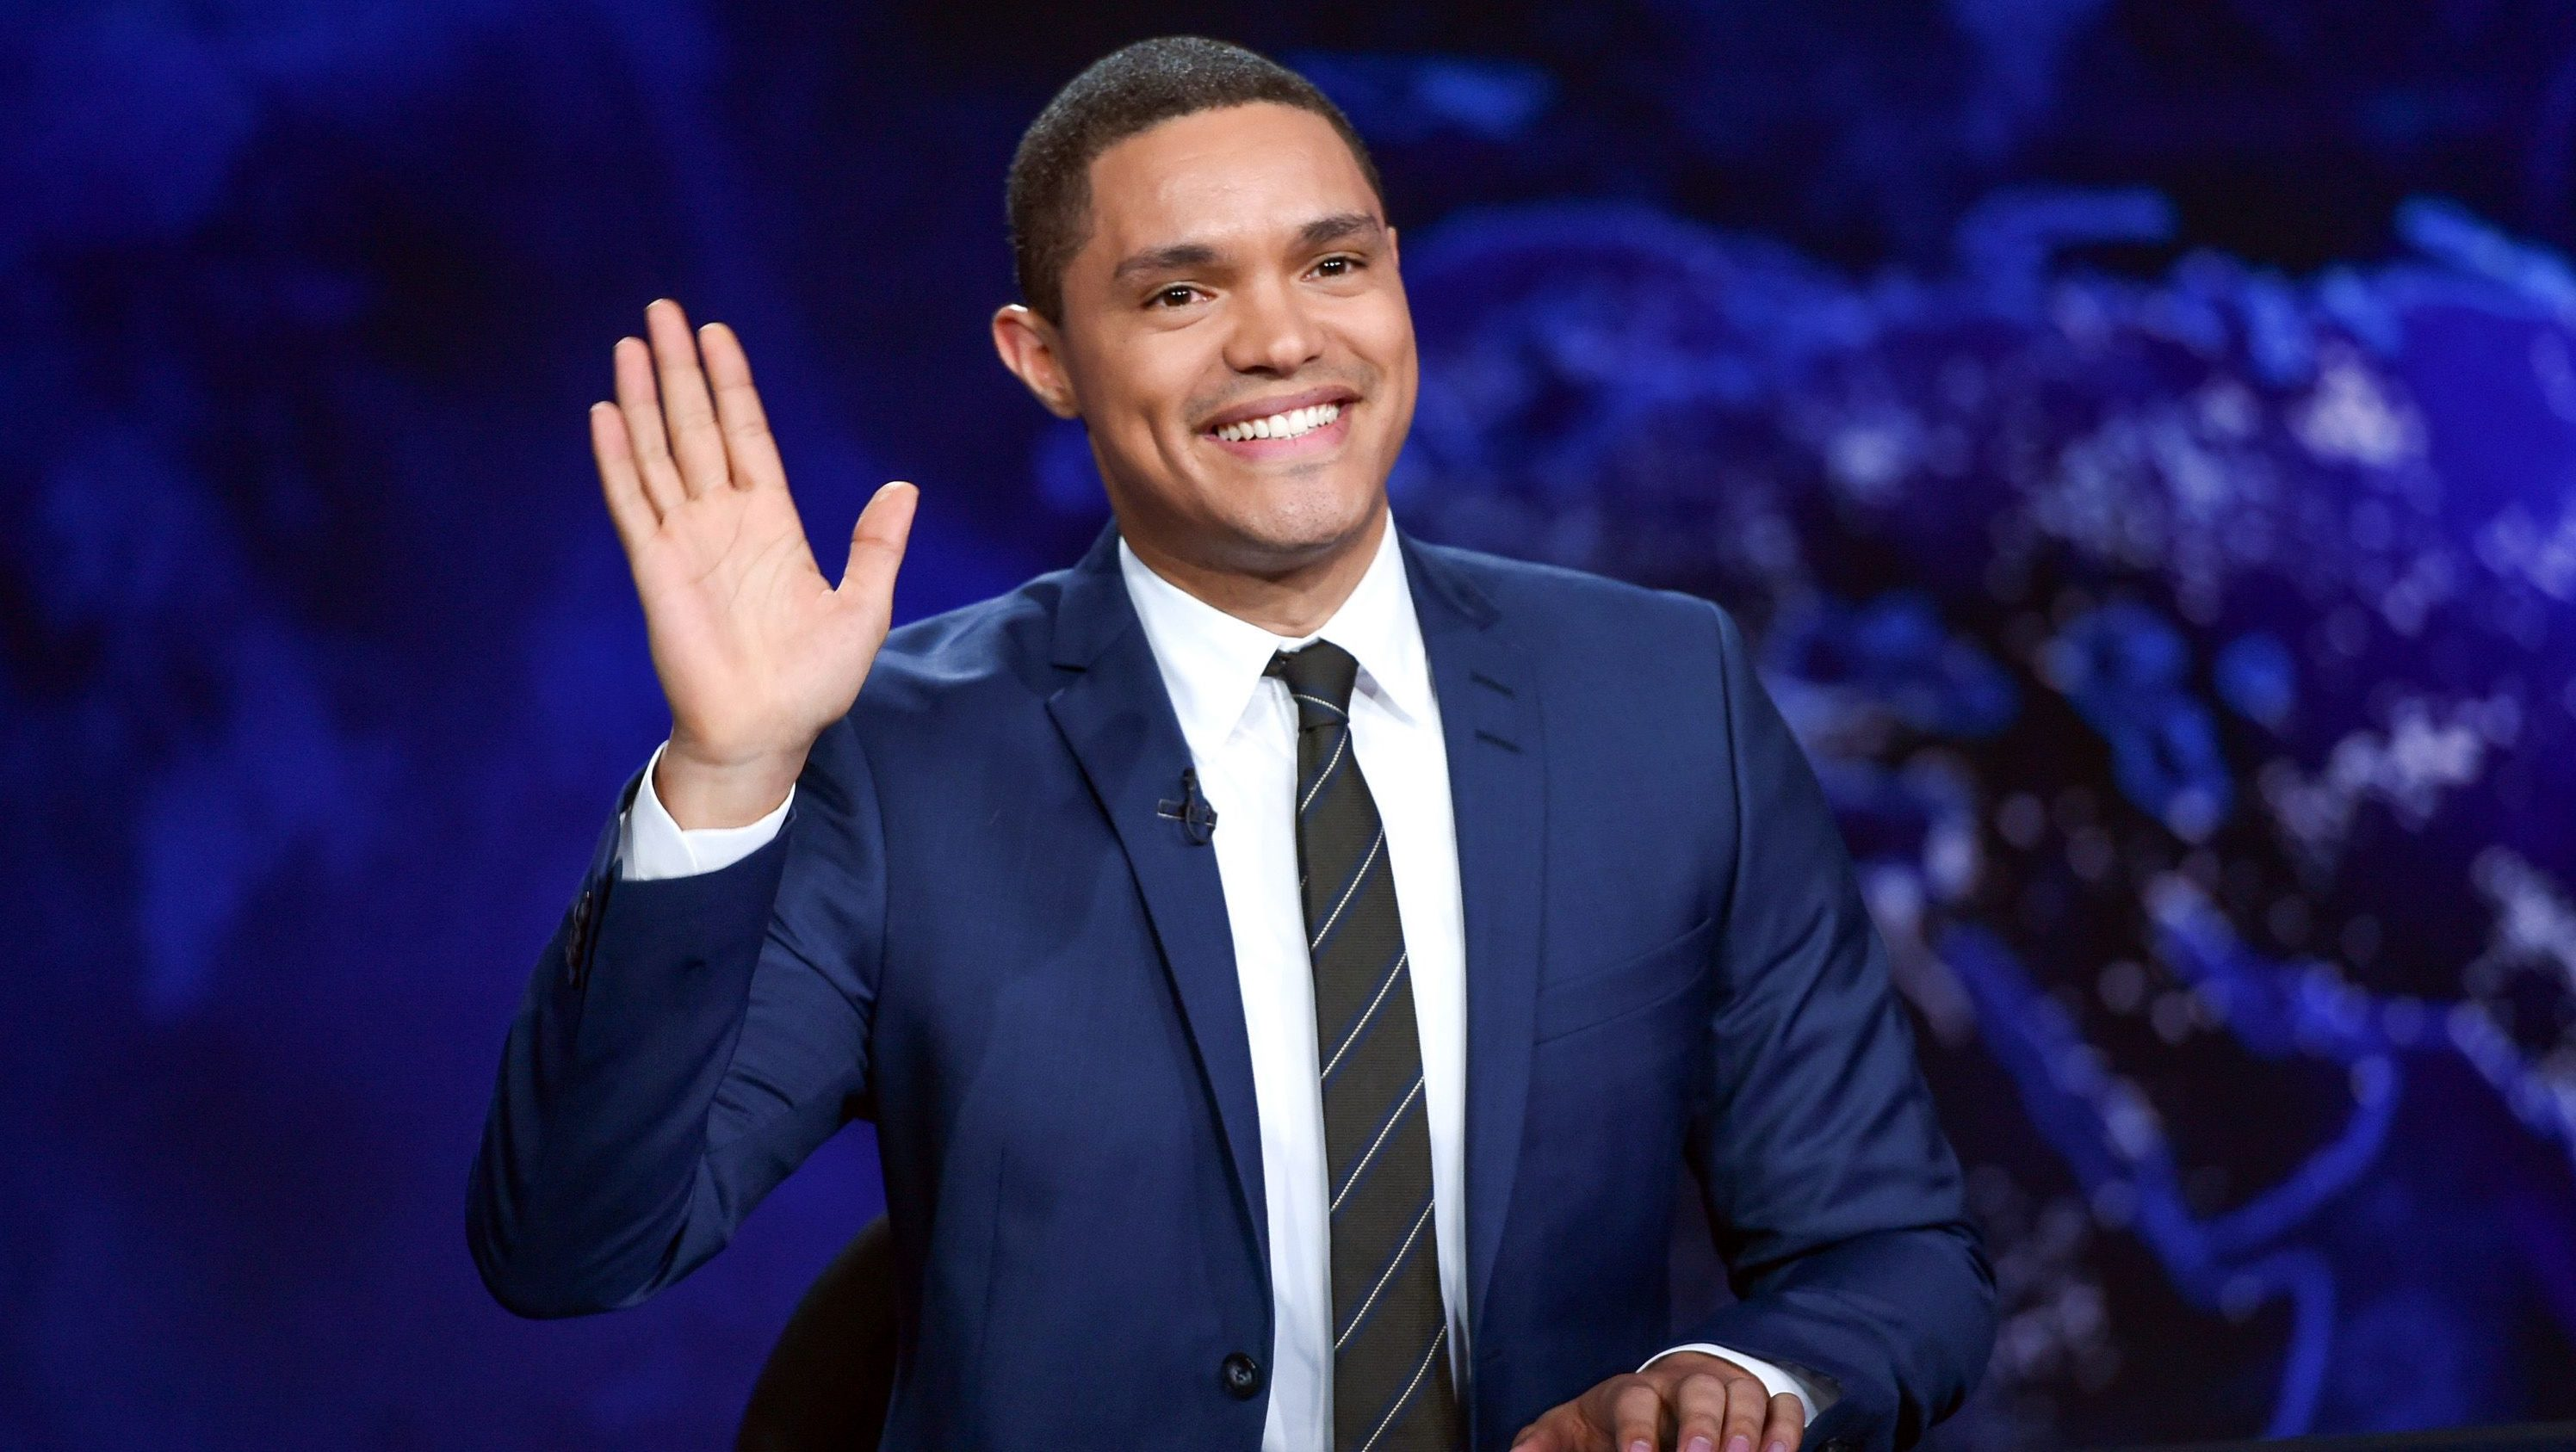 """In this Sept. 29, 2015 file photo, Trevor Noah gestures on the set during a taping of """"The Daily Show with Trevor Noah"""" in New York City."""